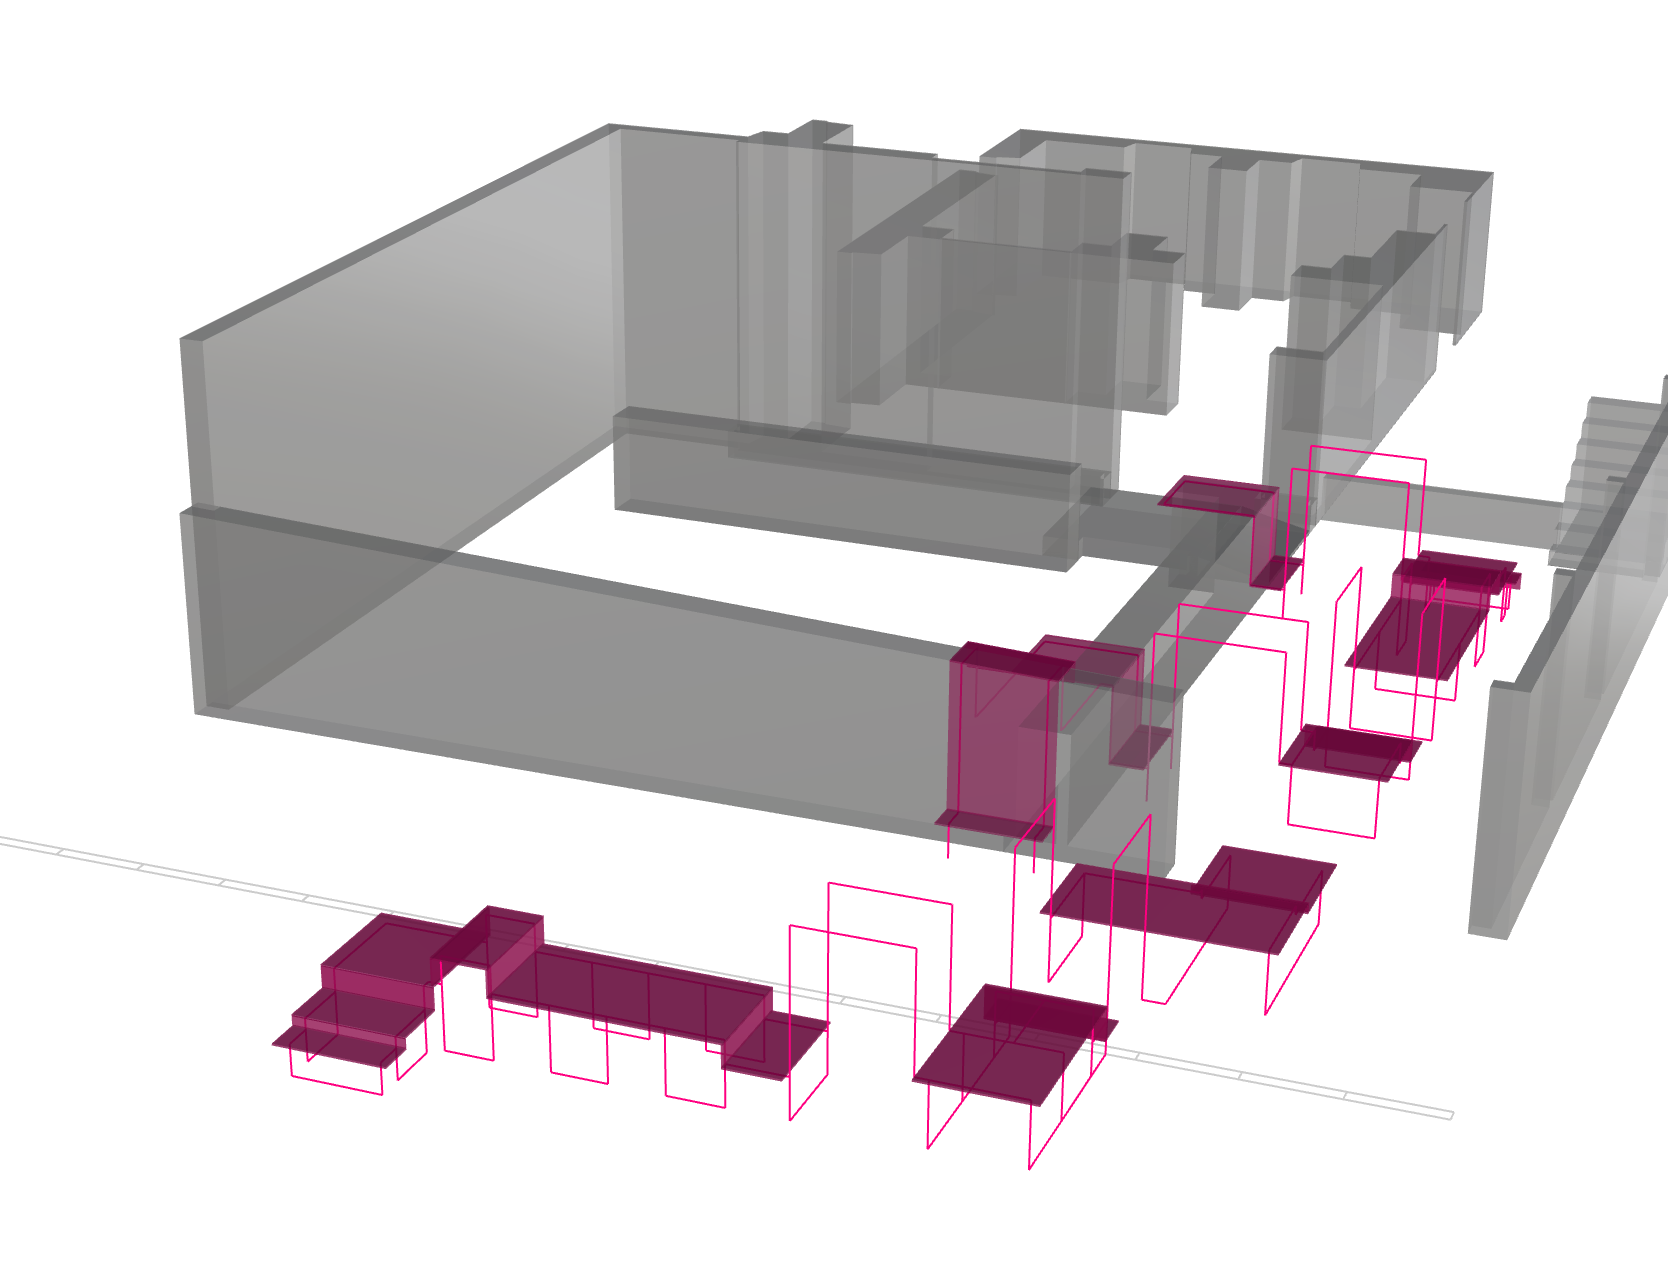 The gray parts are the walls of the gallery, the pink our installation.